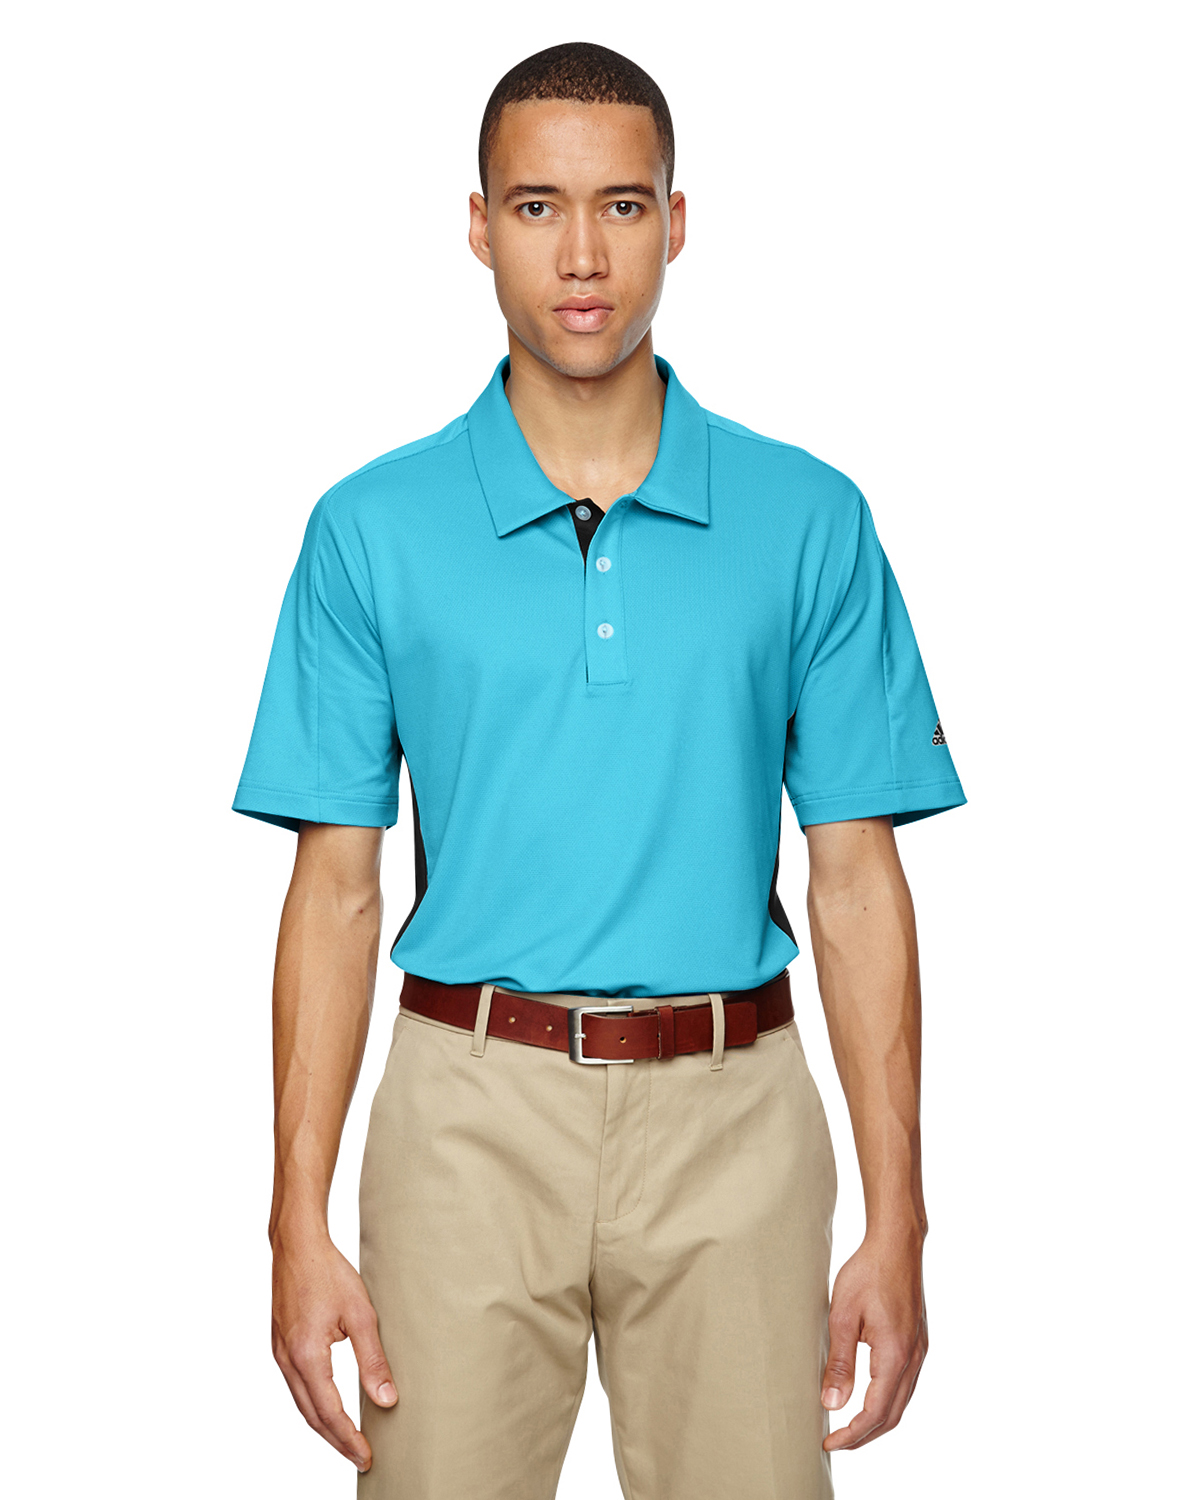 Adidas Golf Puremotion® Colorblock 3-Stripes Polo